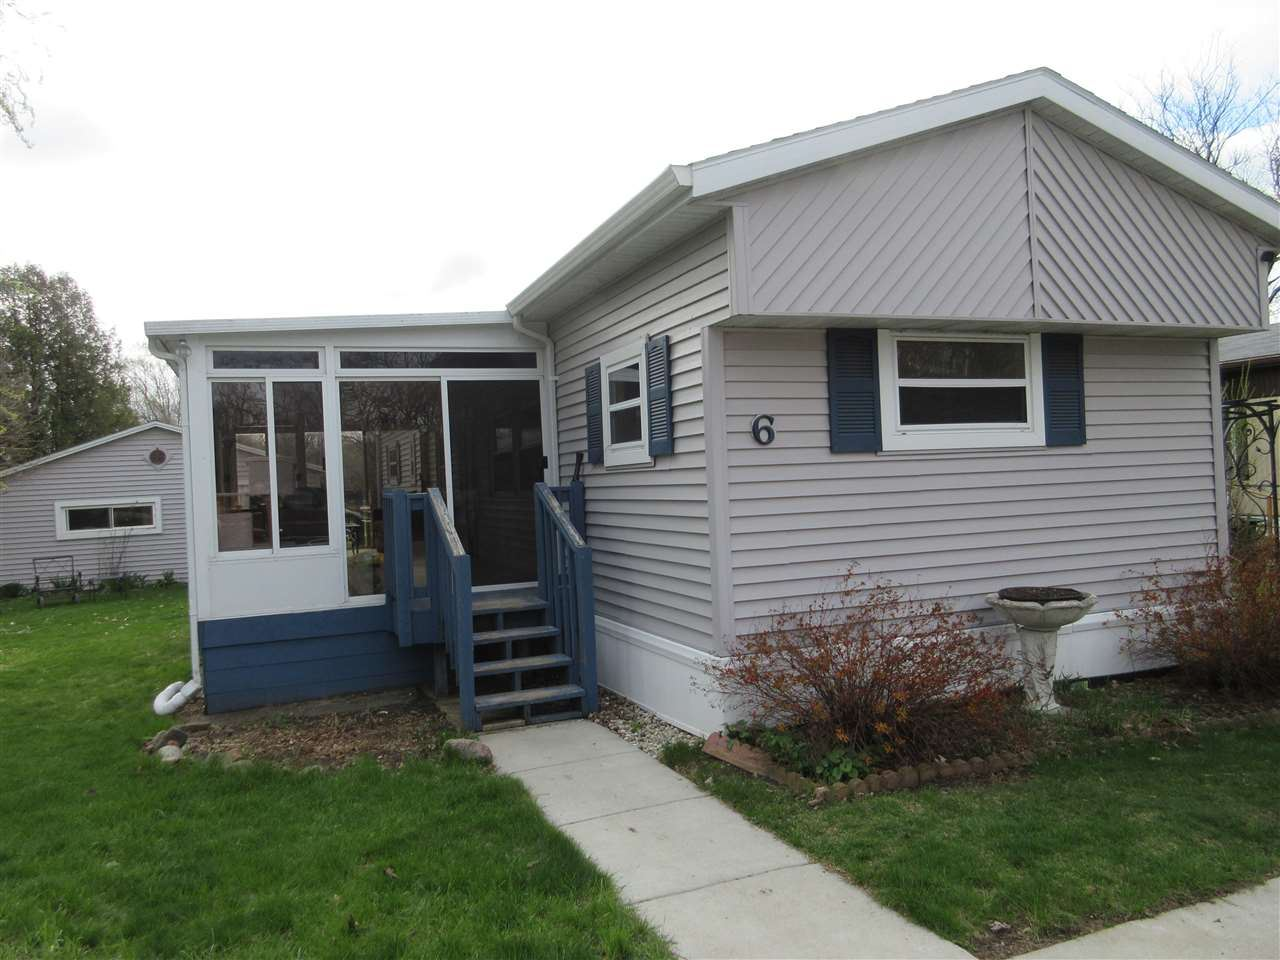 6 Lapidary Ln #6, Janesville, WI 53548 - #: 1906502